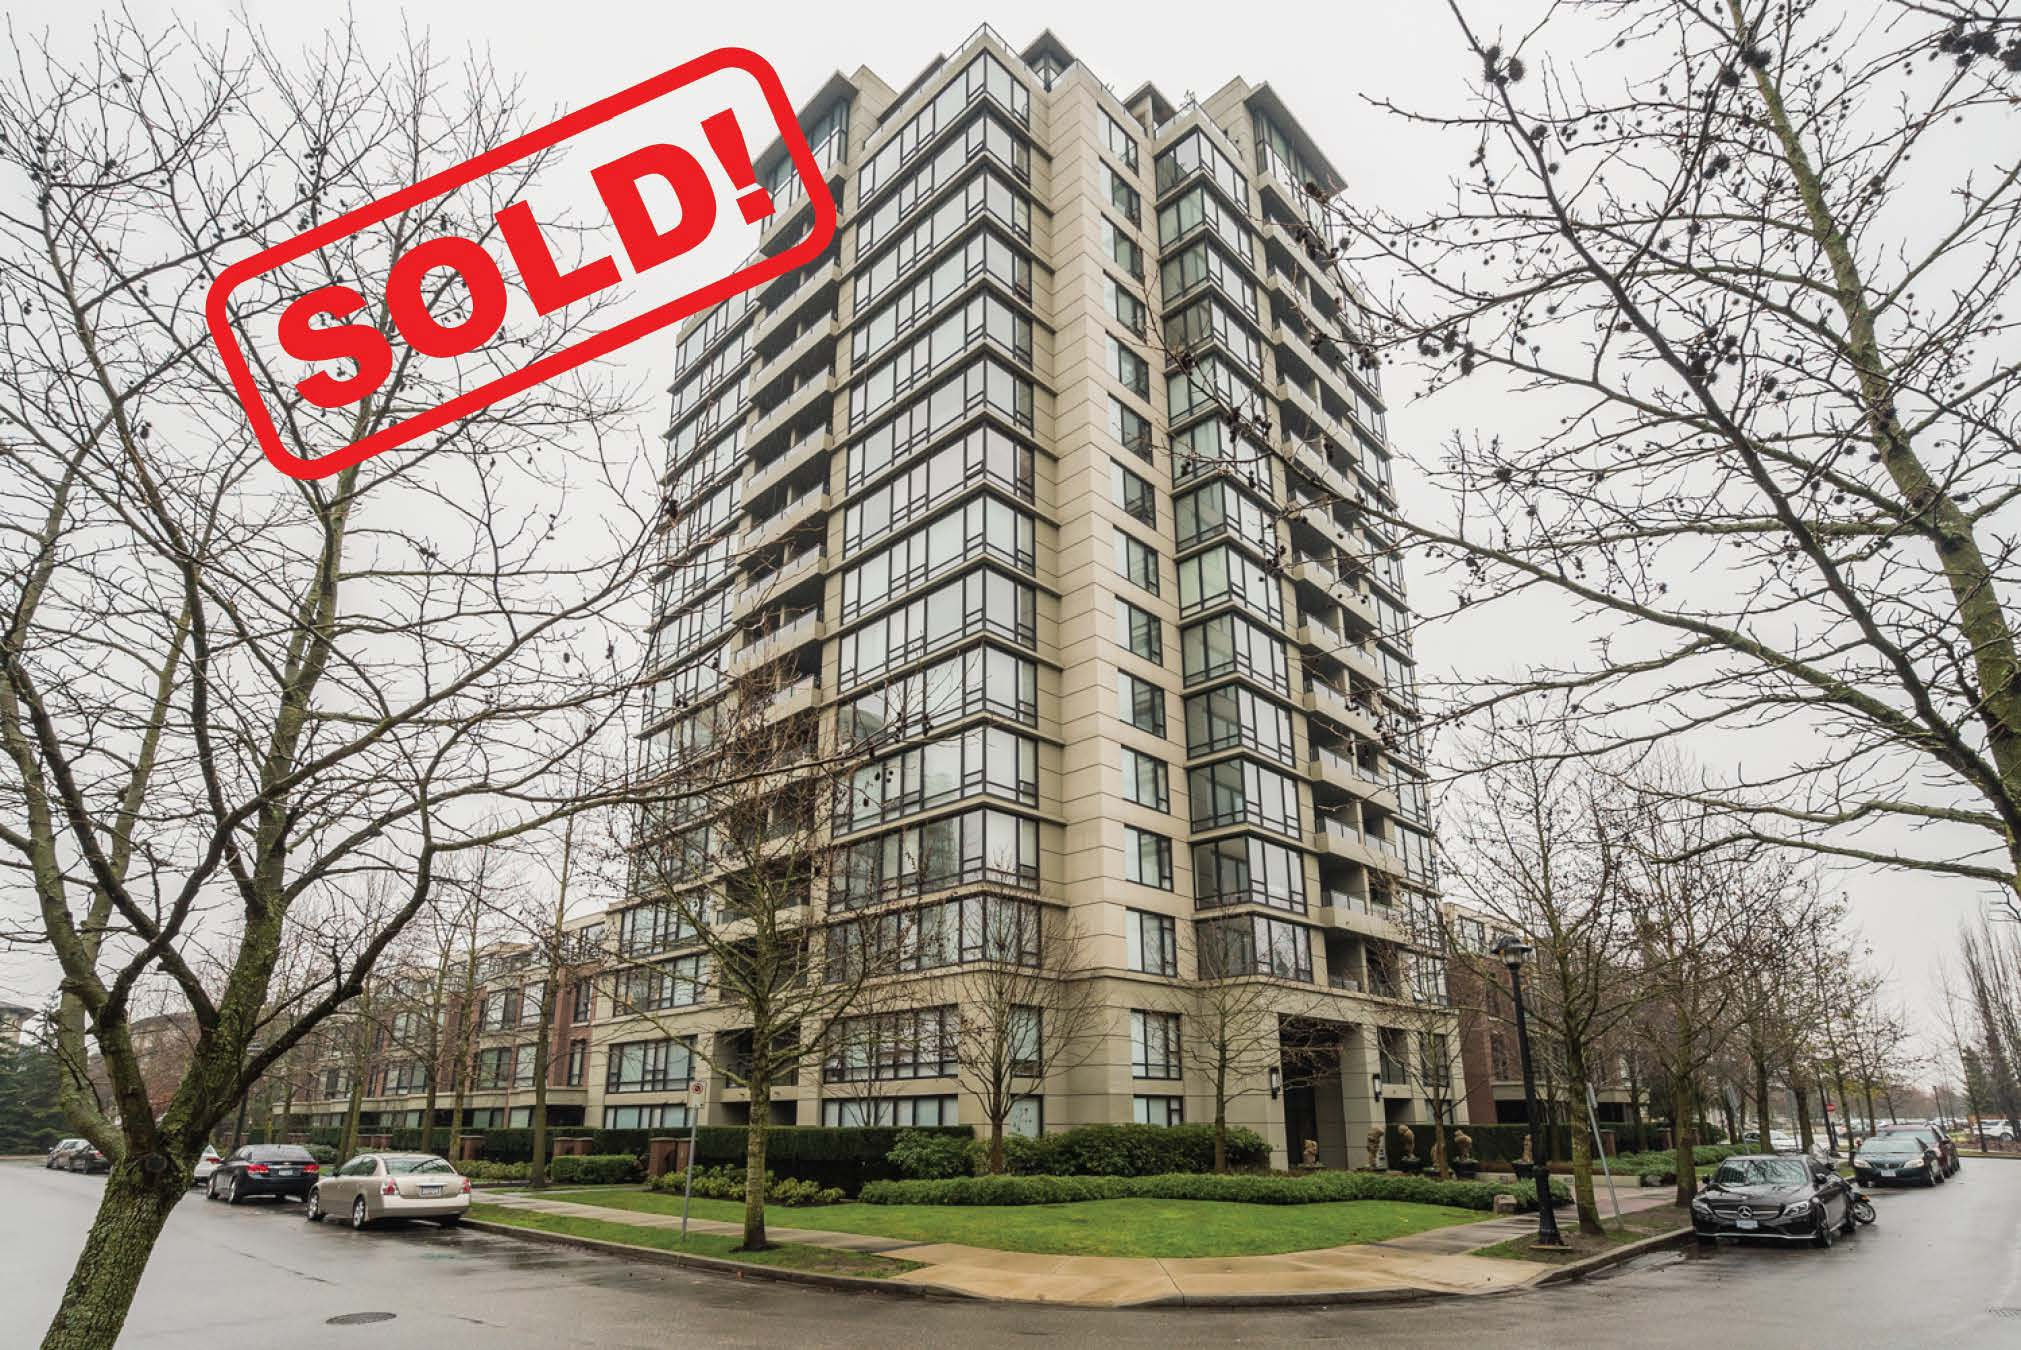 808-9133 HEMLOCK DRIVE     SOLD FOR: $685,000  2 BED | 2 BATH | 1,003 SF